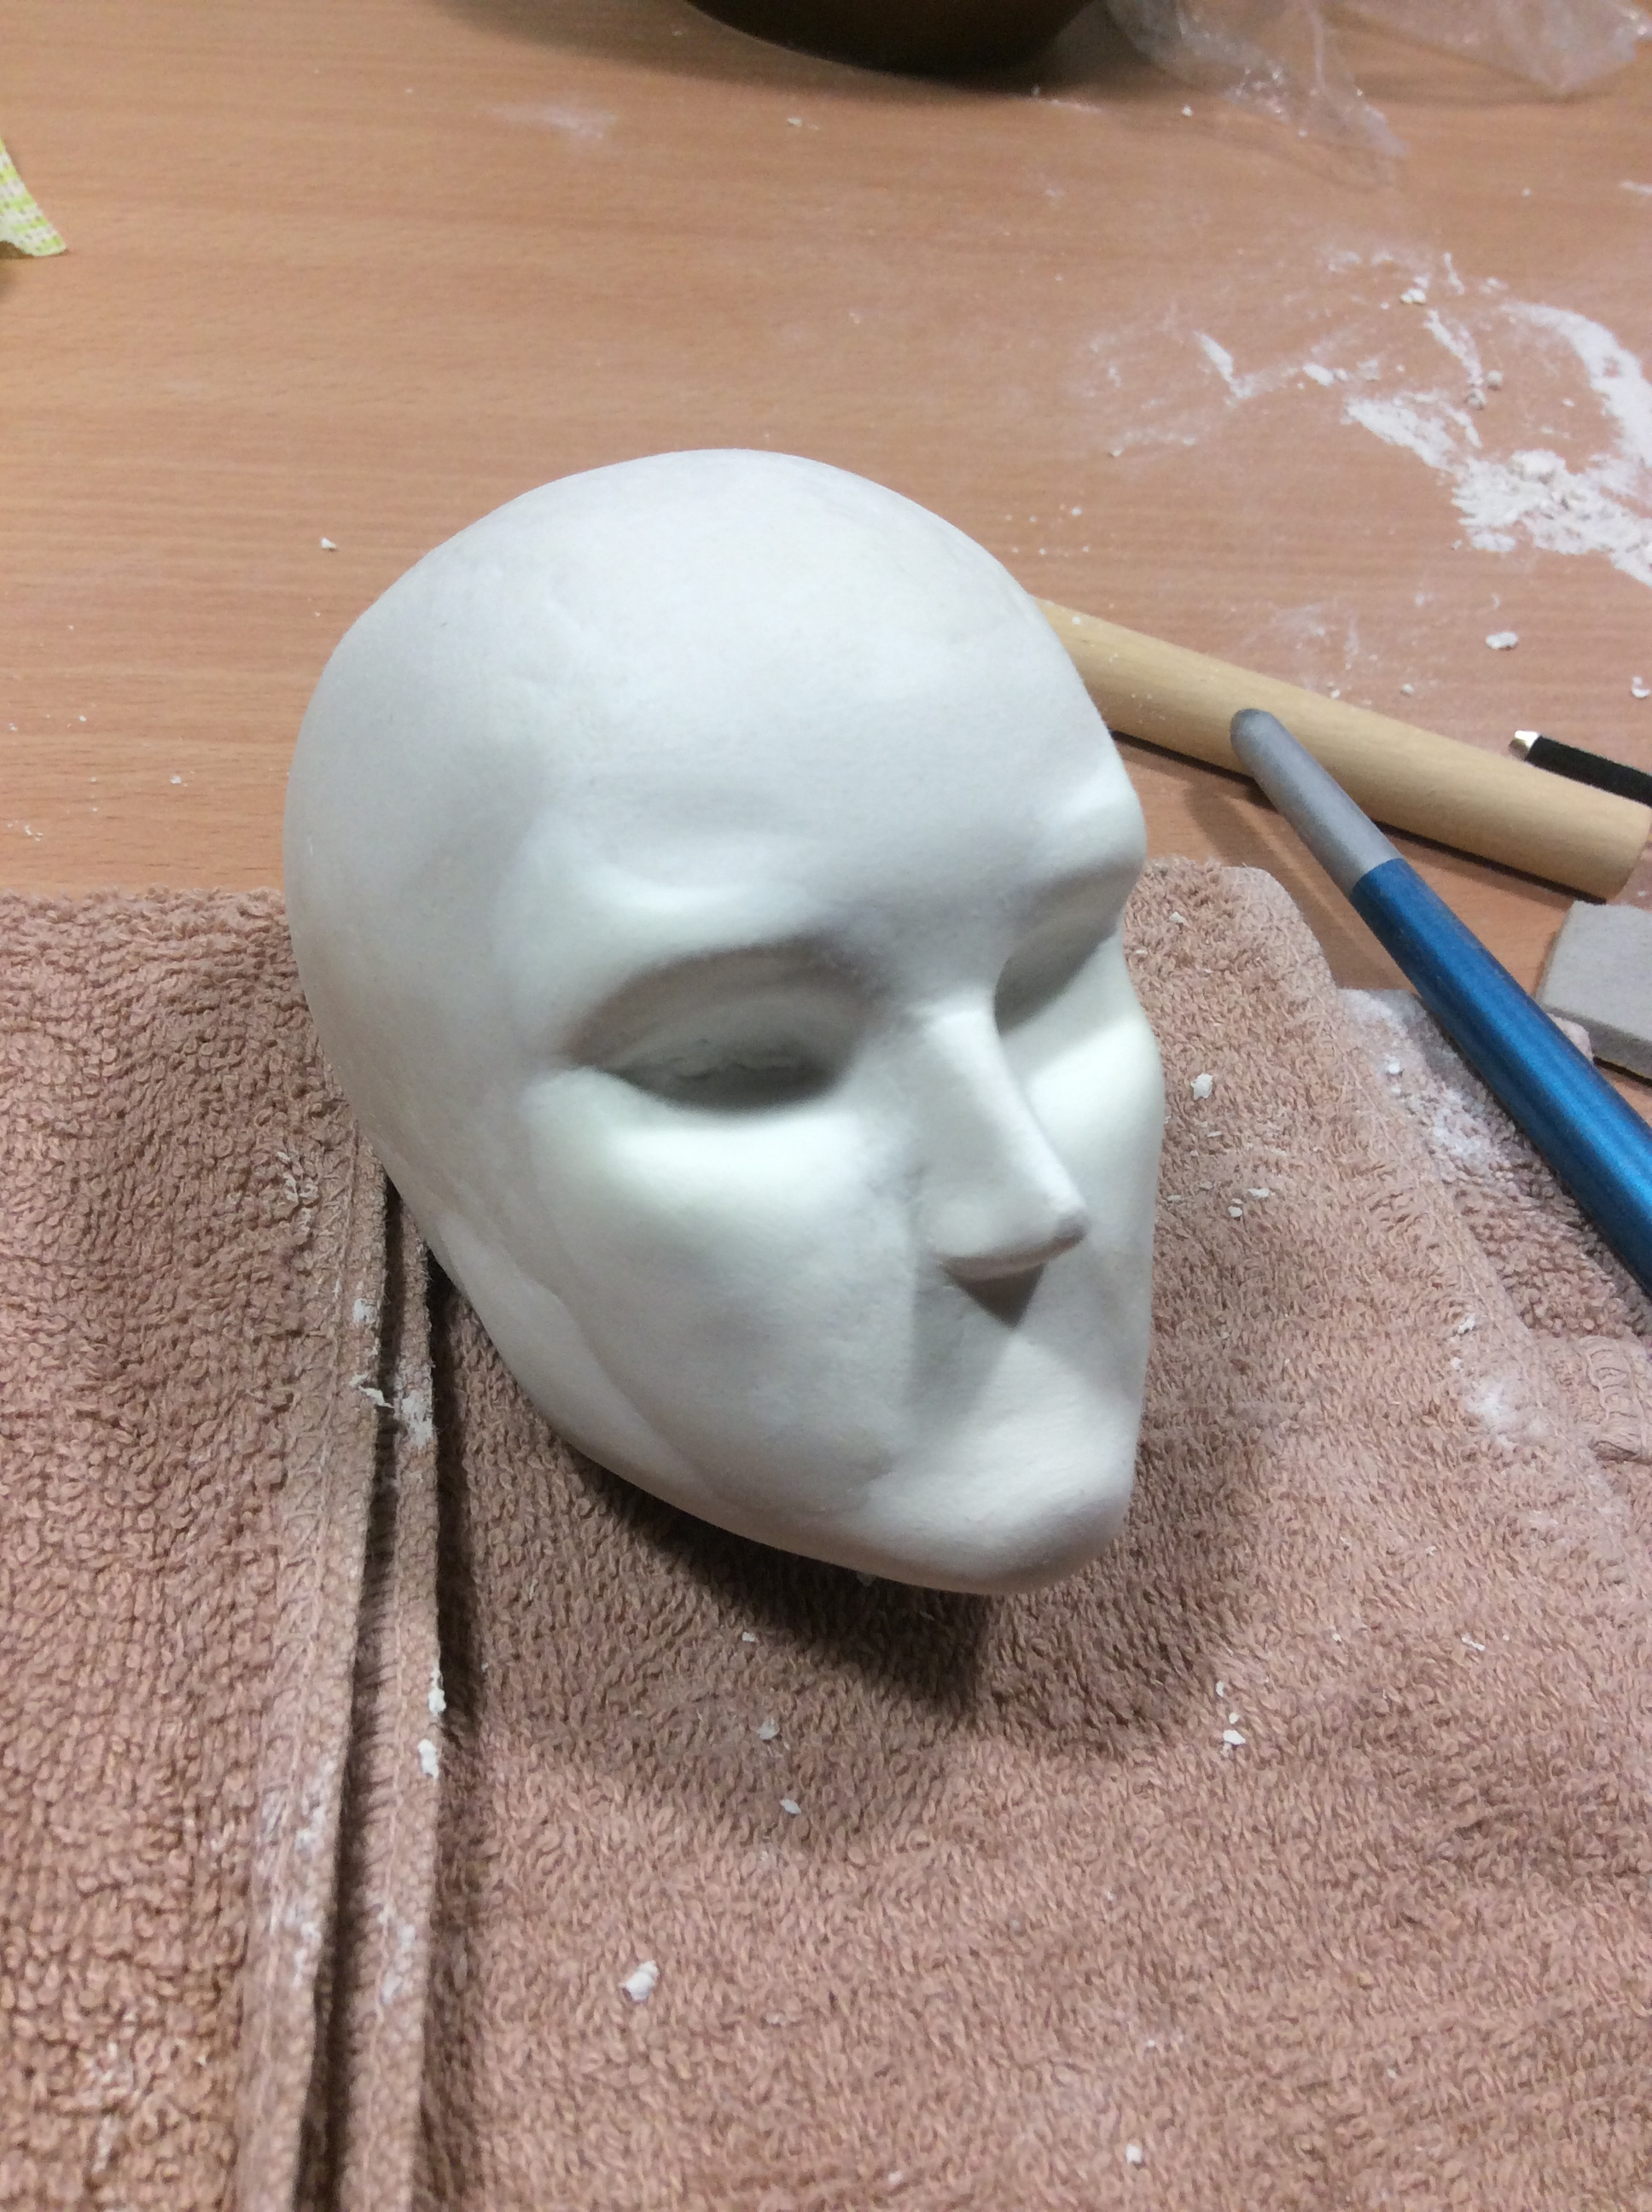 jemse---my-first-doll-head-making-progress-diary-part-2_31602475613_o